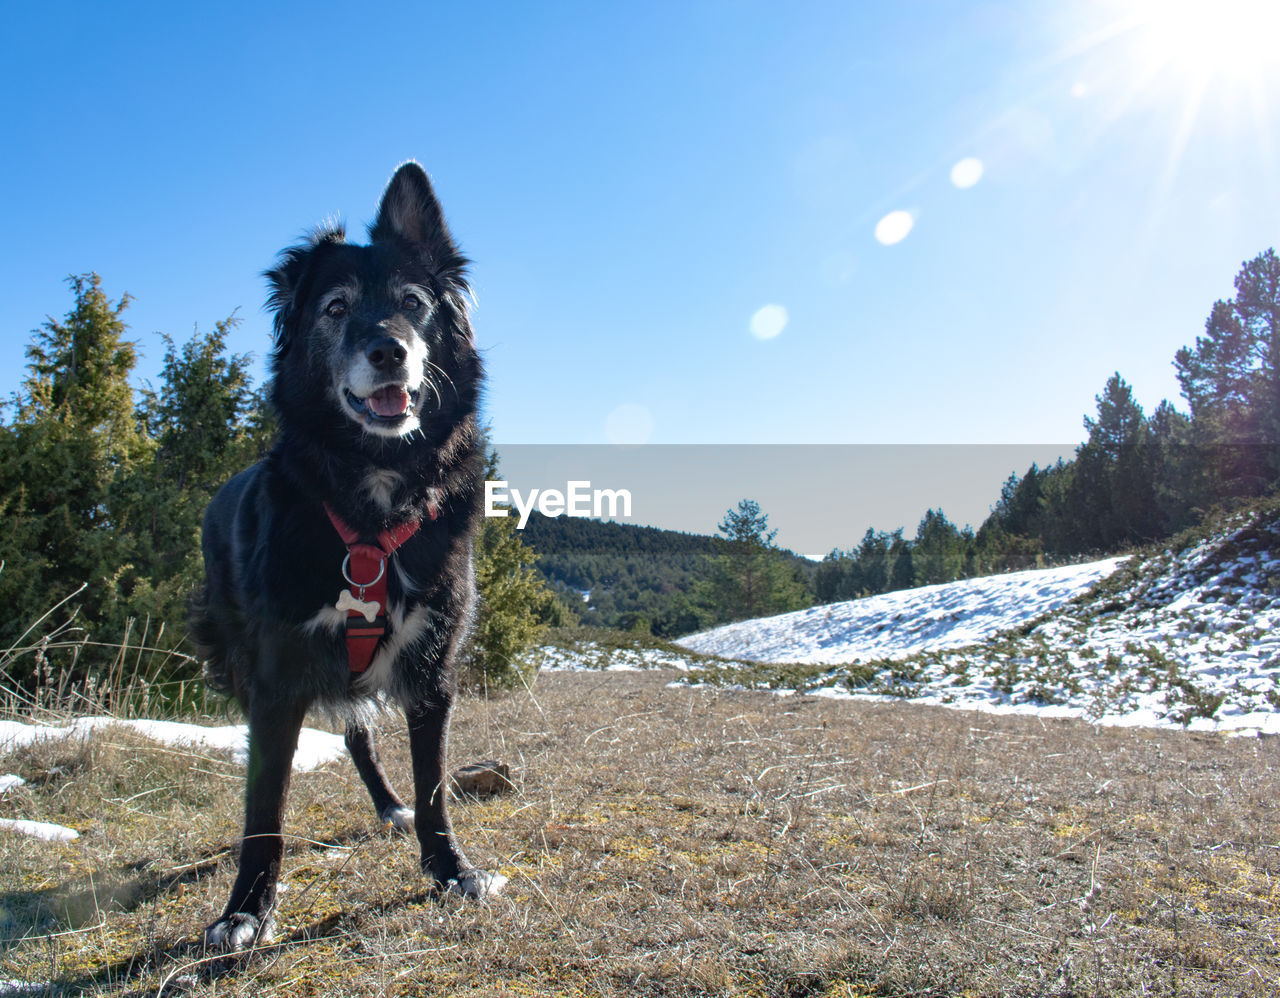 mammal, one animal, domestic animals, domestic, animal themes, pets, dog, canine, animal, sky, nature, vertebrate, day, snow, land, winter, sunlight, mountain, landscape, cold temperature, mouth open